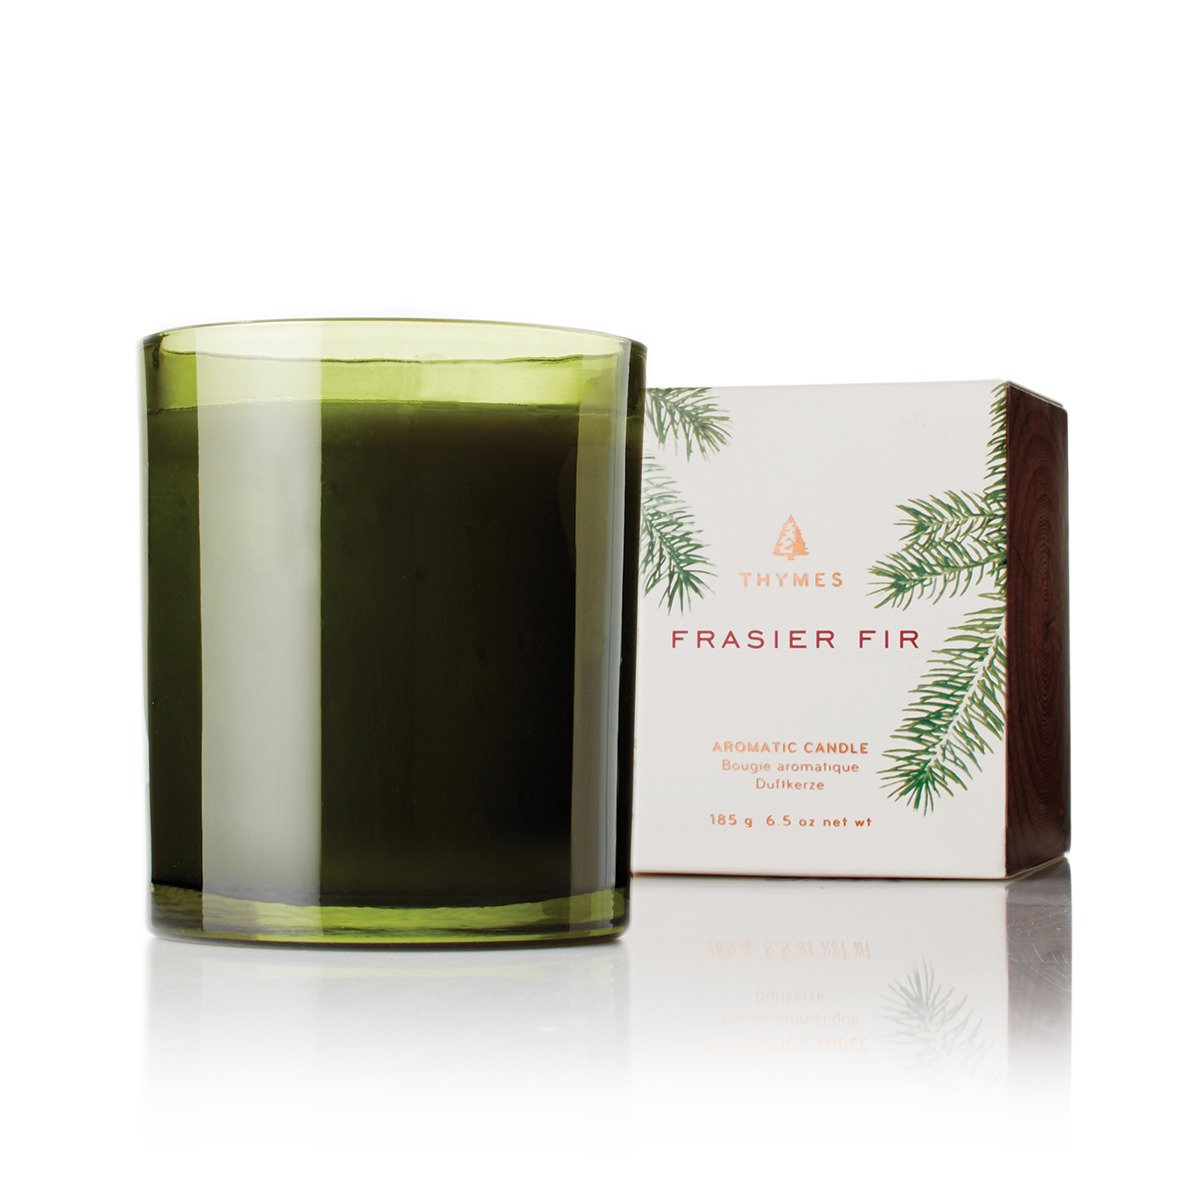 Thymes Poured Candle FRASIER FIR GREEN GLASS, 6.5 oz Jar